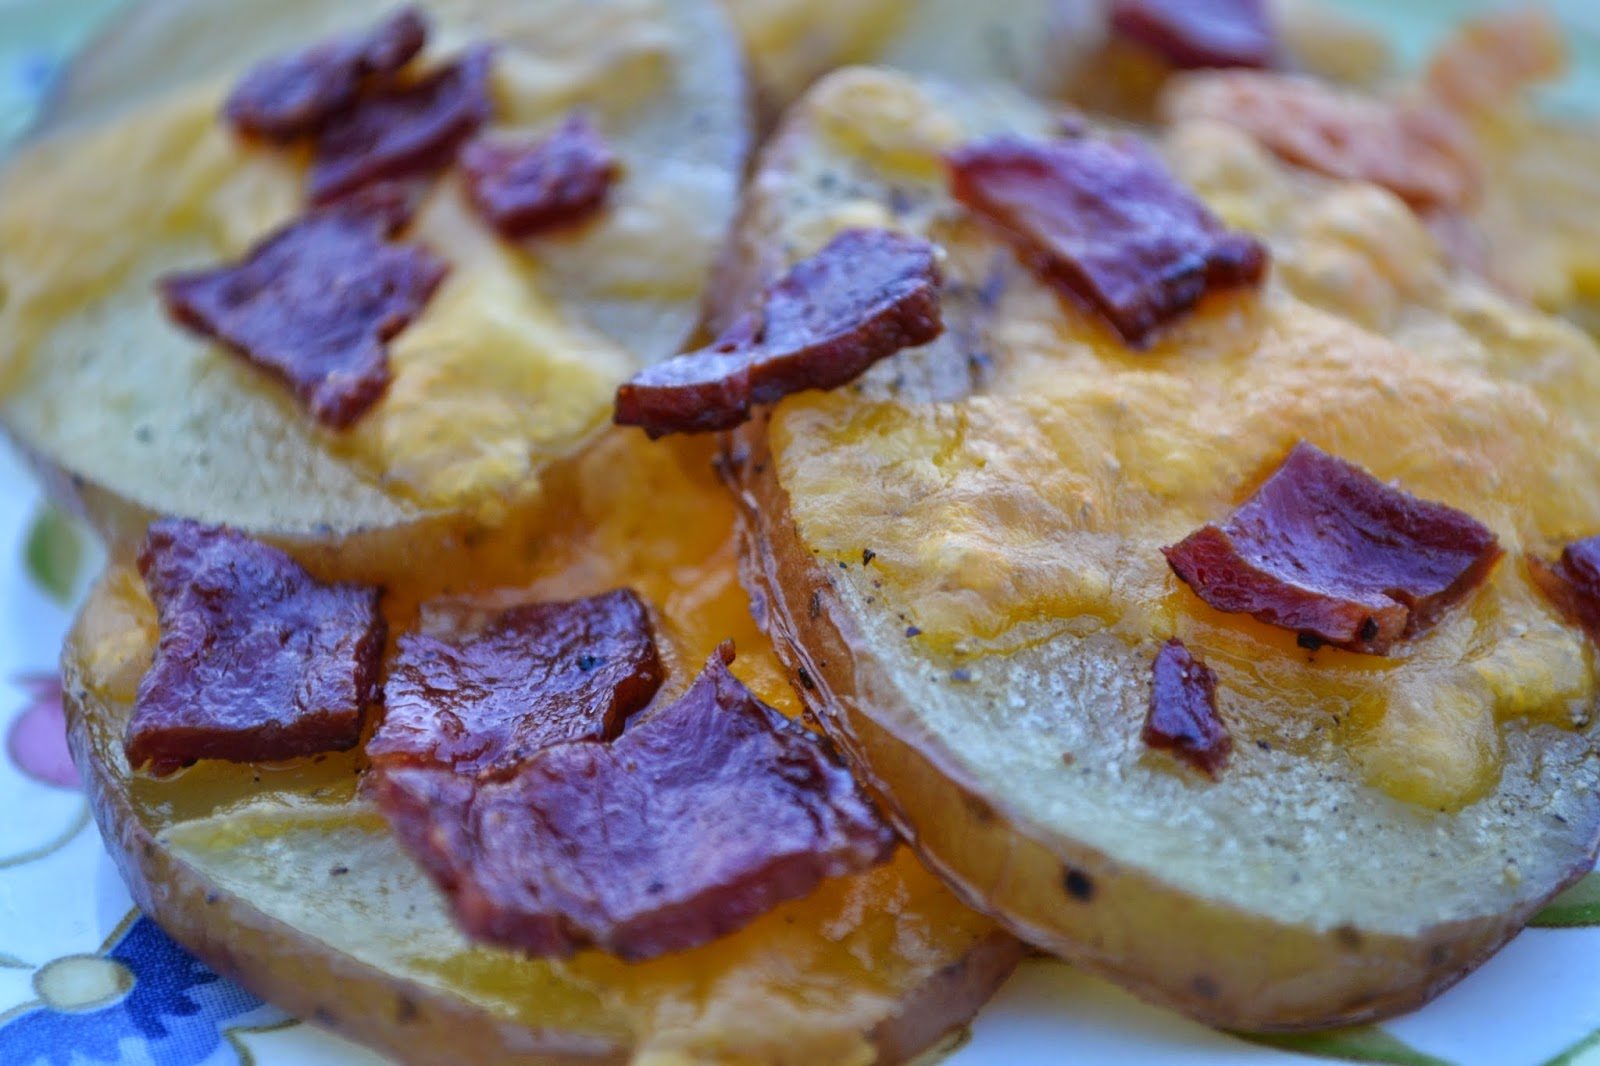 10DaysofTailgate - Cheesy Maple Leaf Farm Duck Bacon Oven Chips